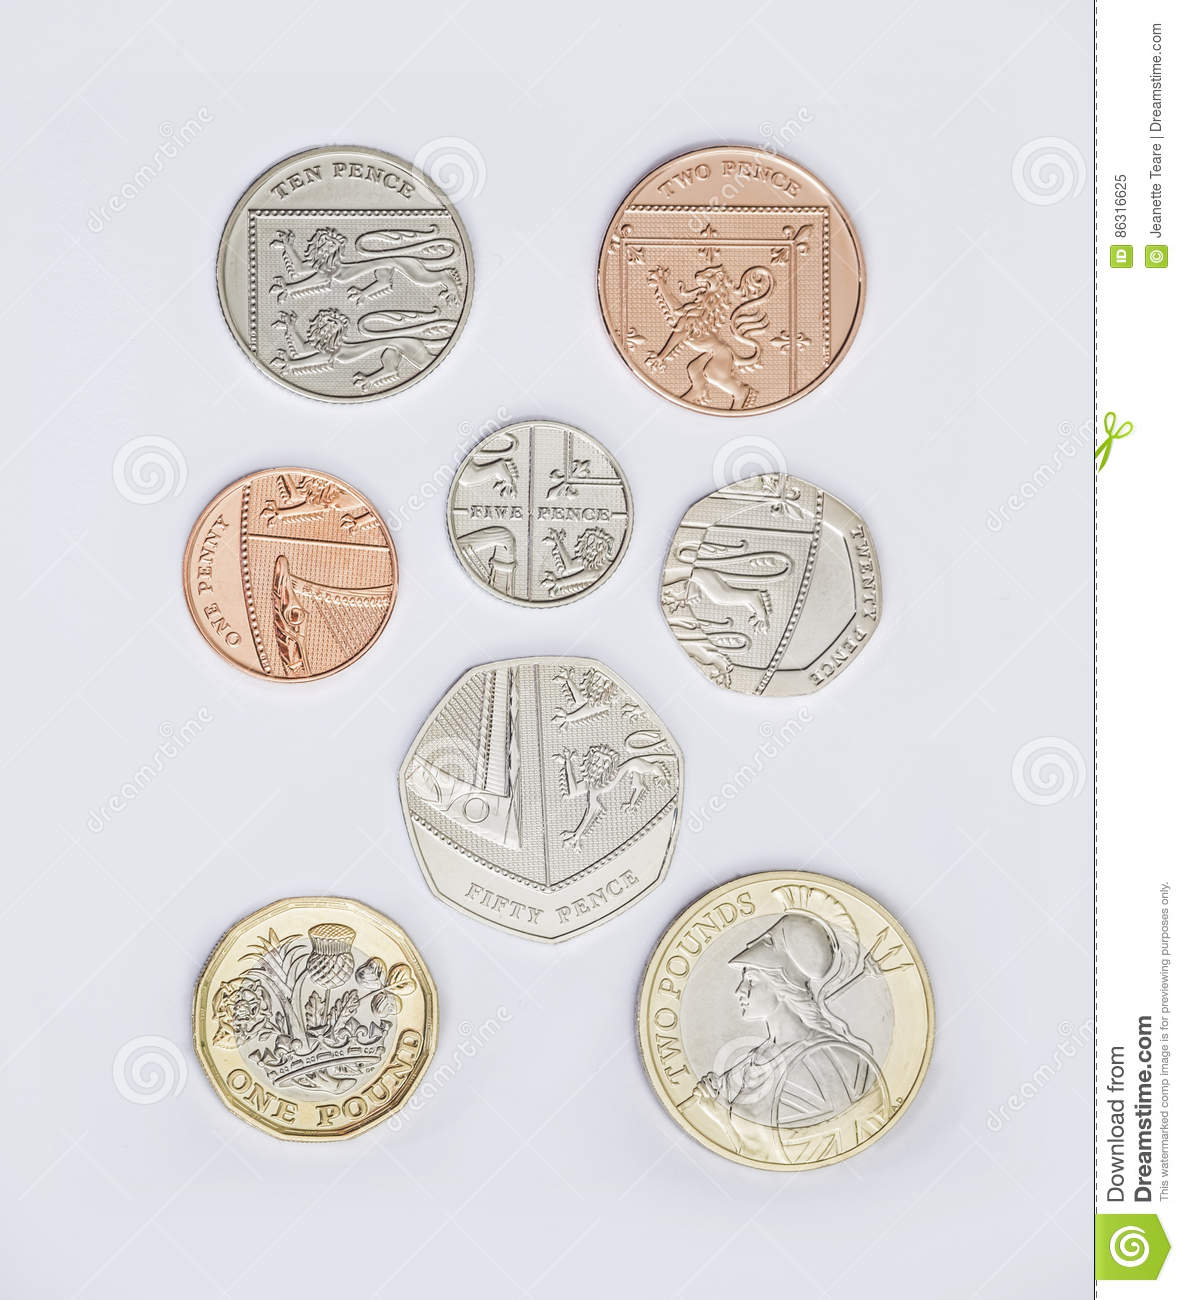 Set of british coins with the 2017 new pound coin design